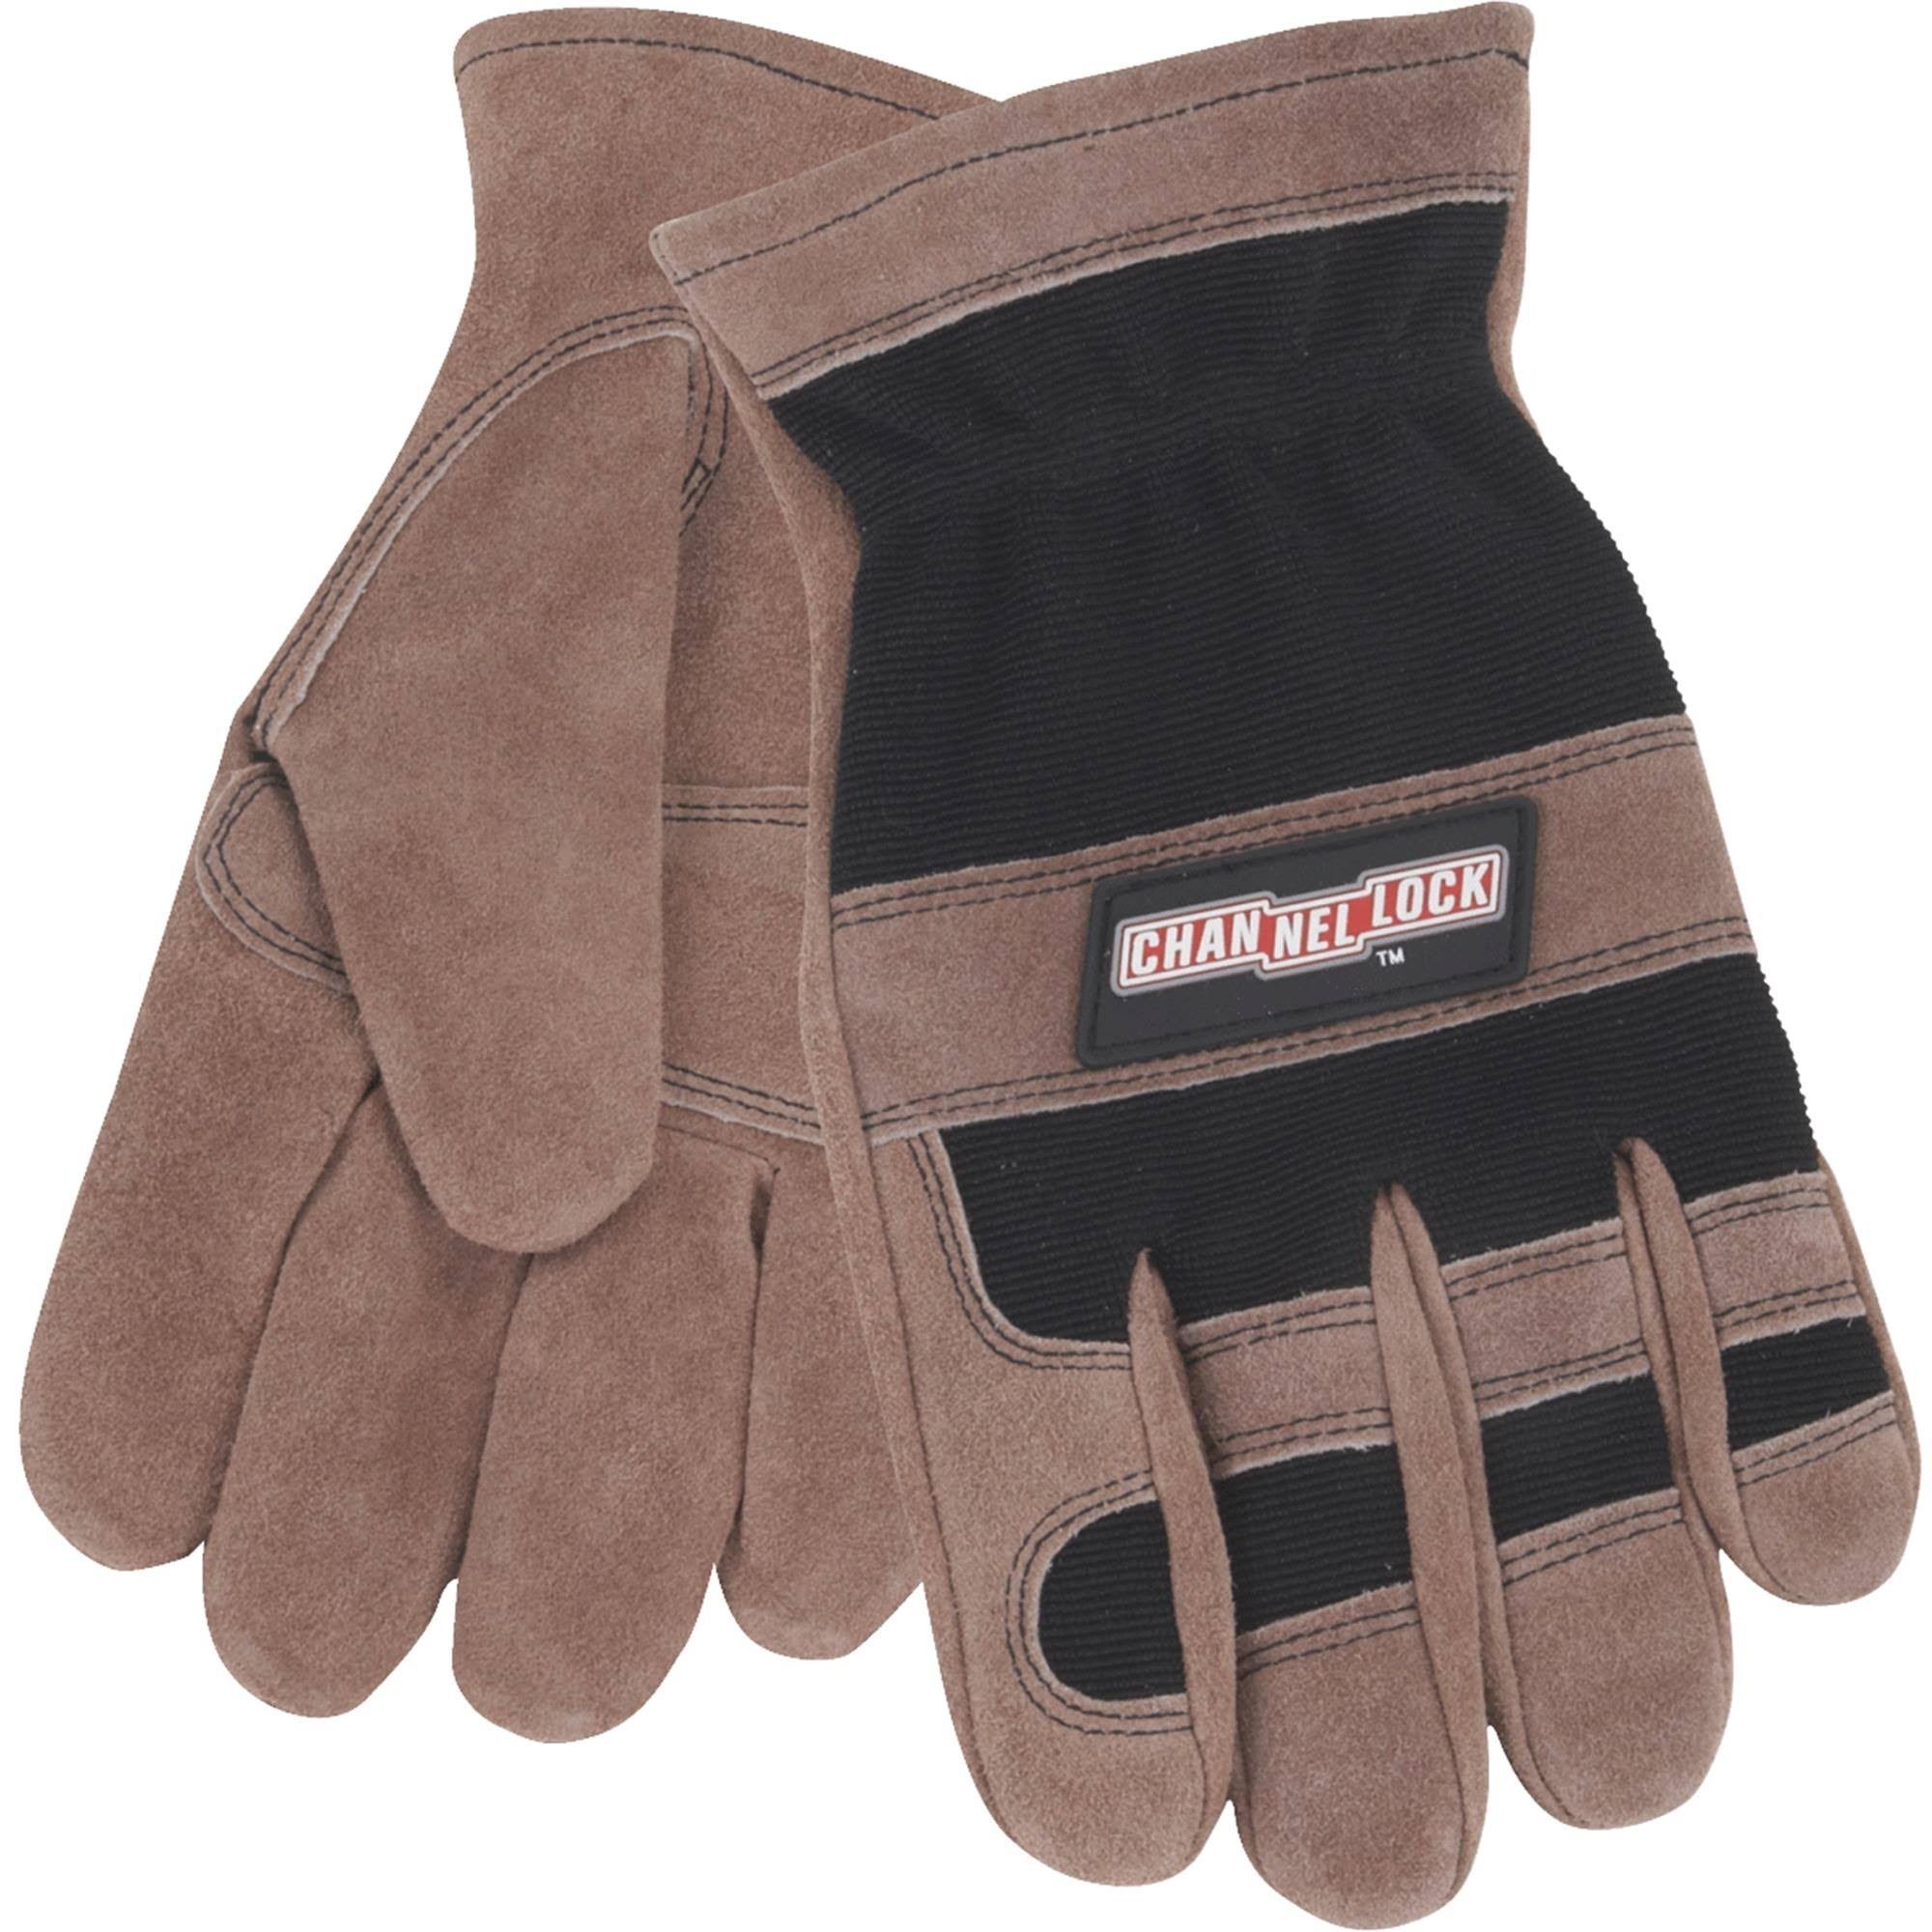 Channellock Leather Work Gloves - Brown